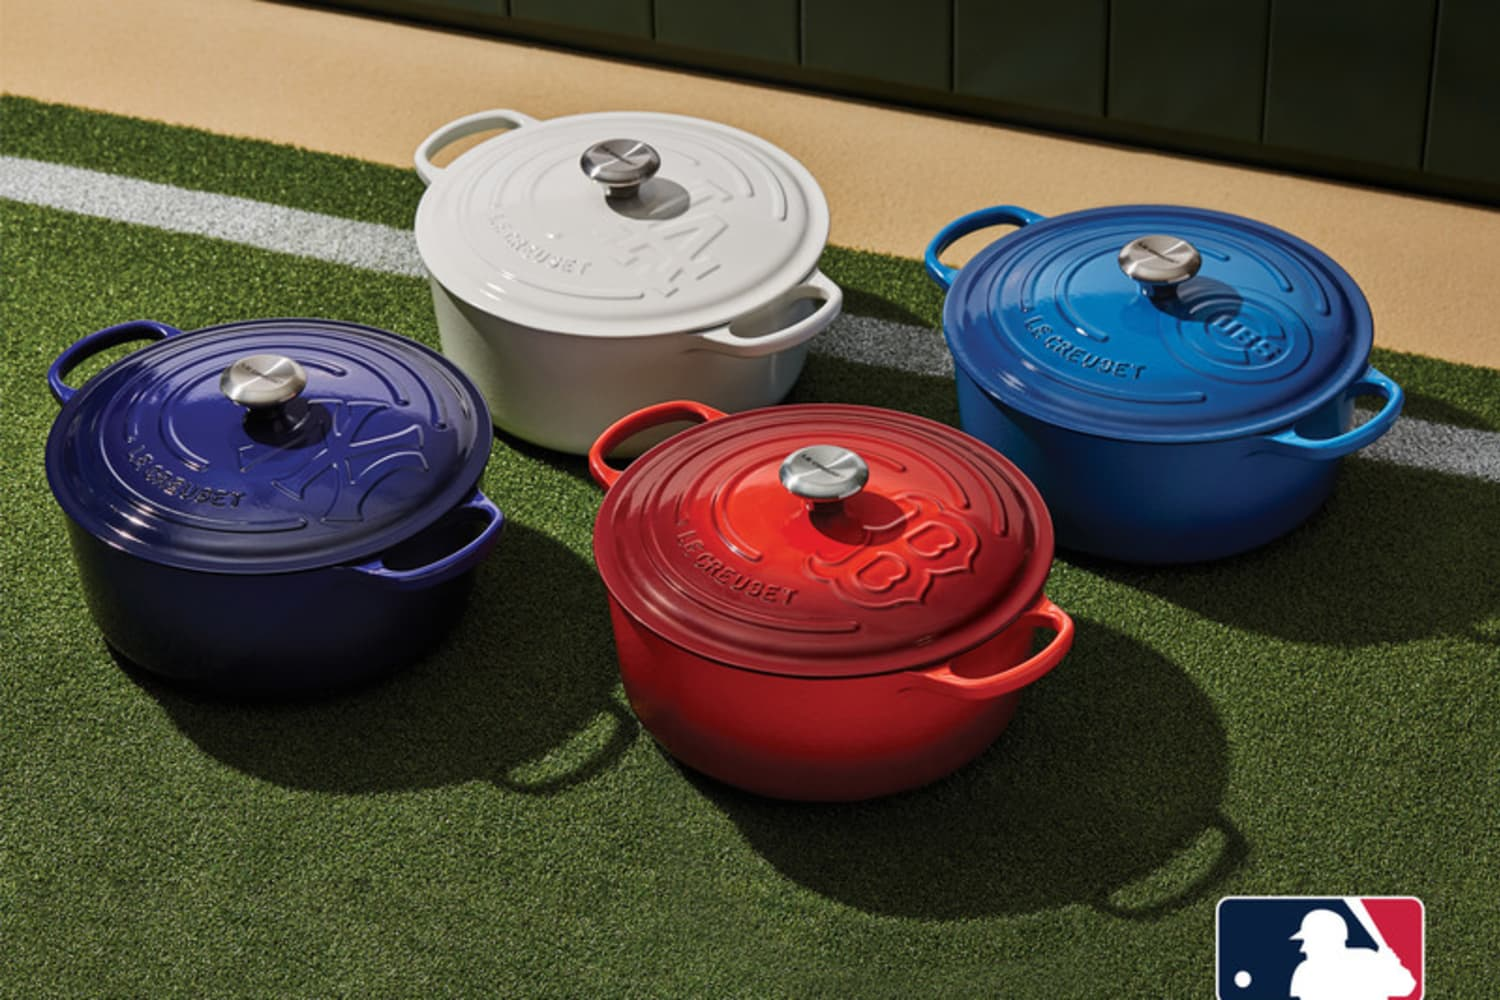 Le Creuset Just Launched a Limited-Edition Collection, and It's a Home Run